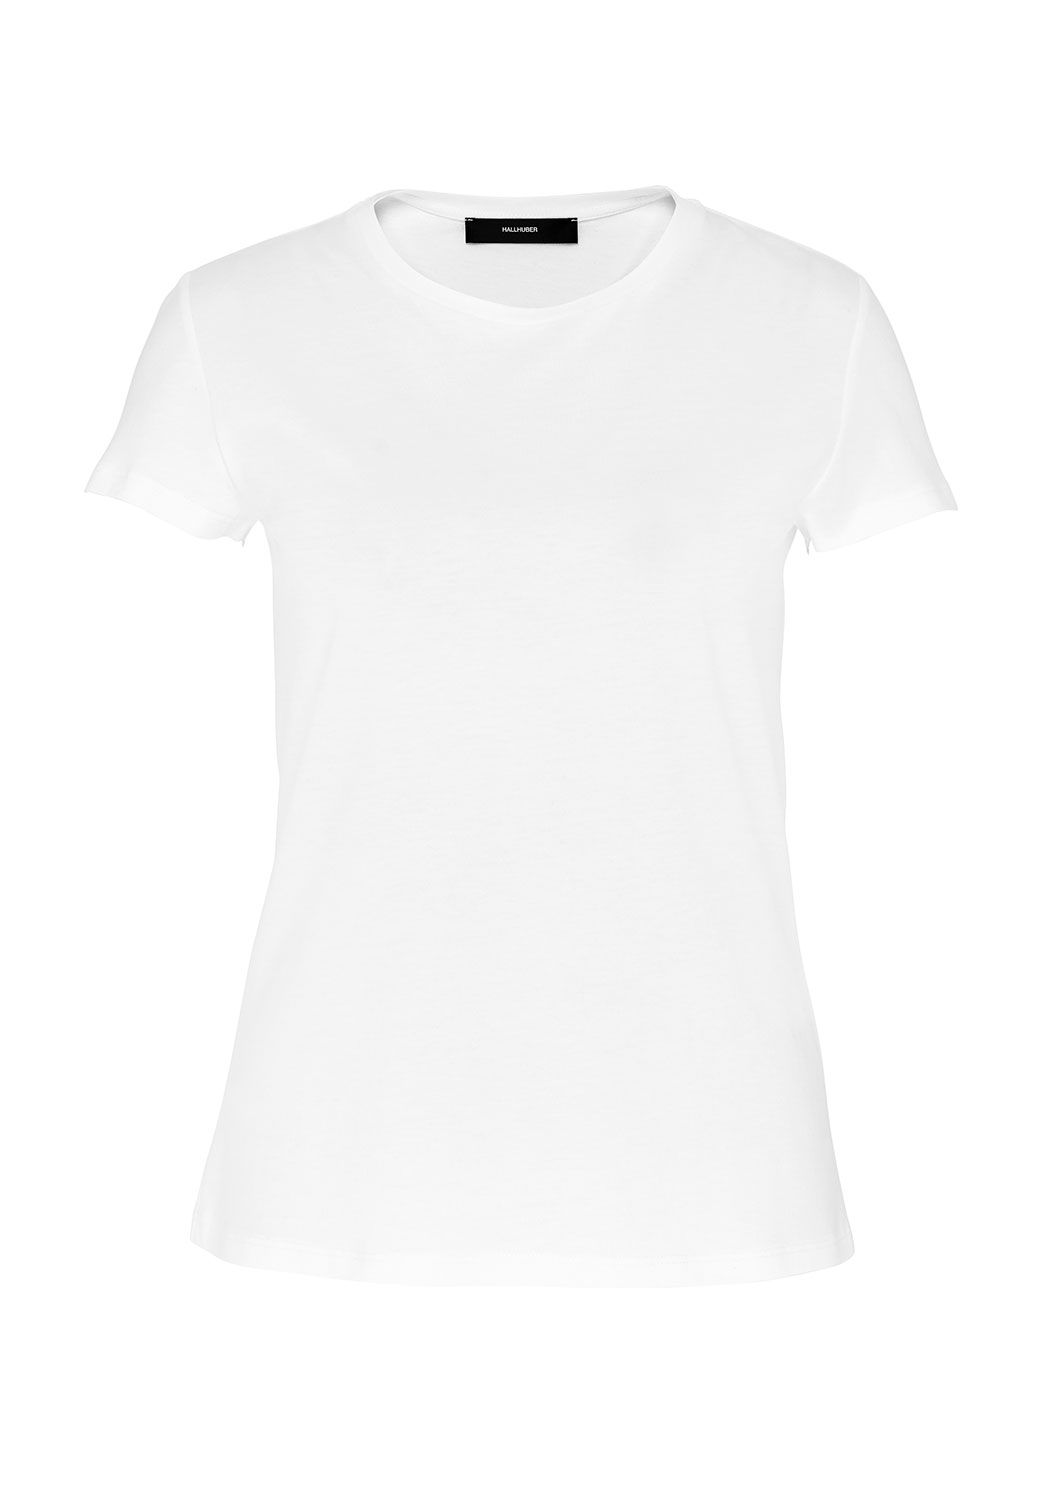 Hallhuber Basic Round Neckline Top, White